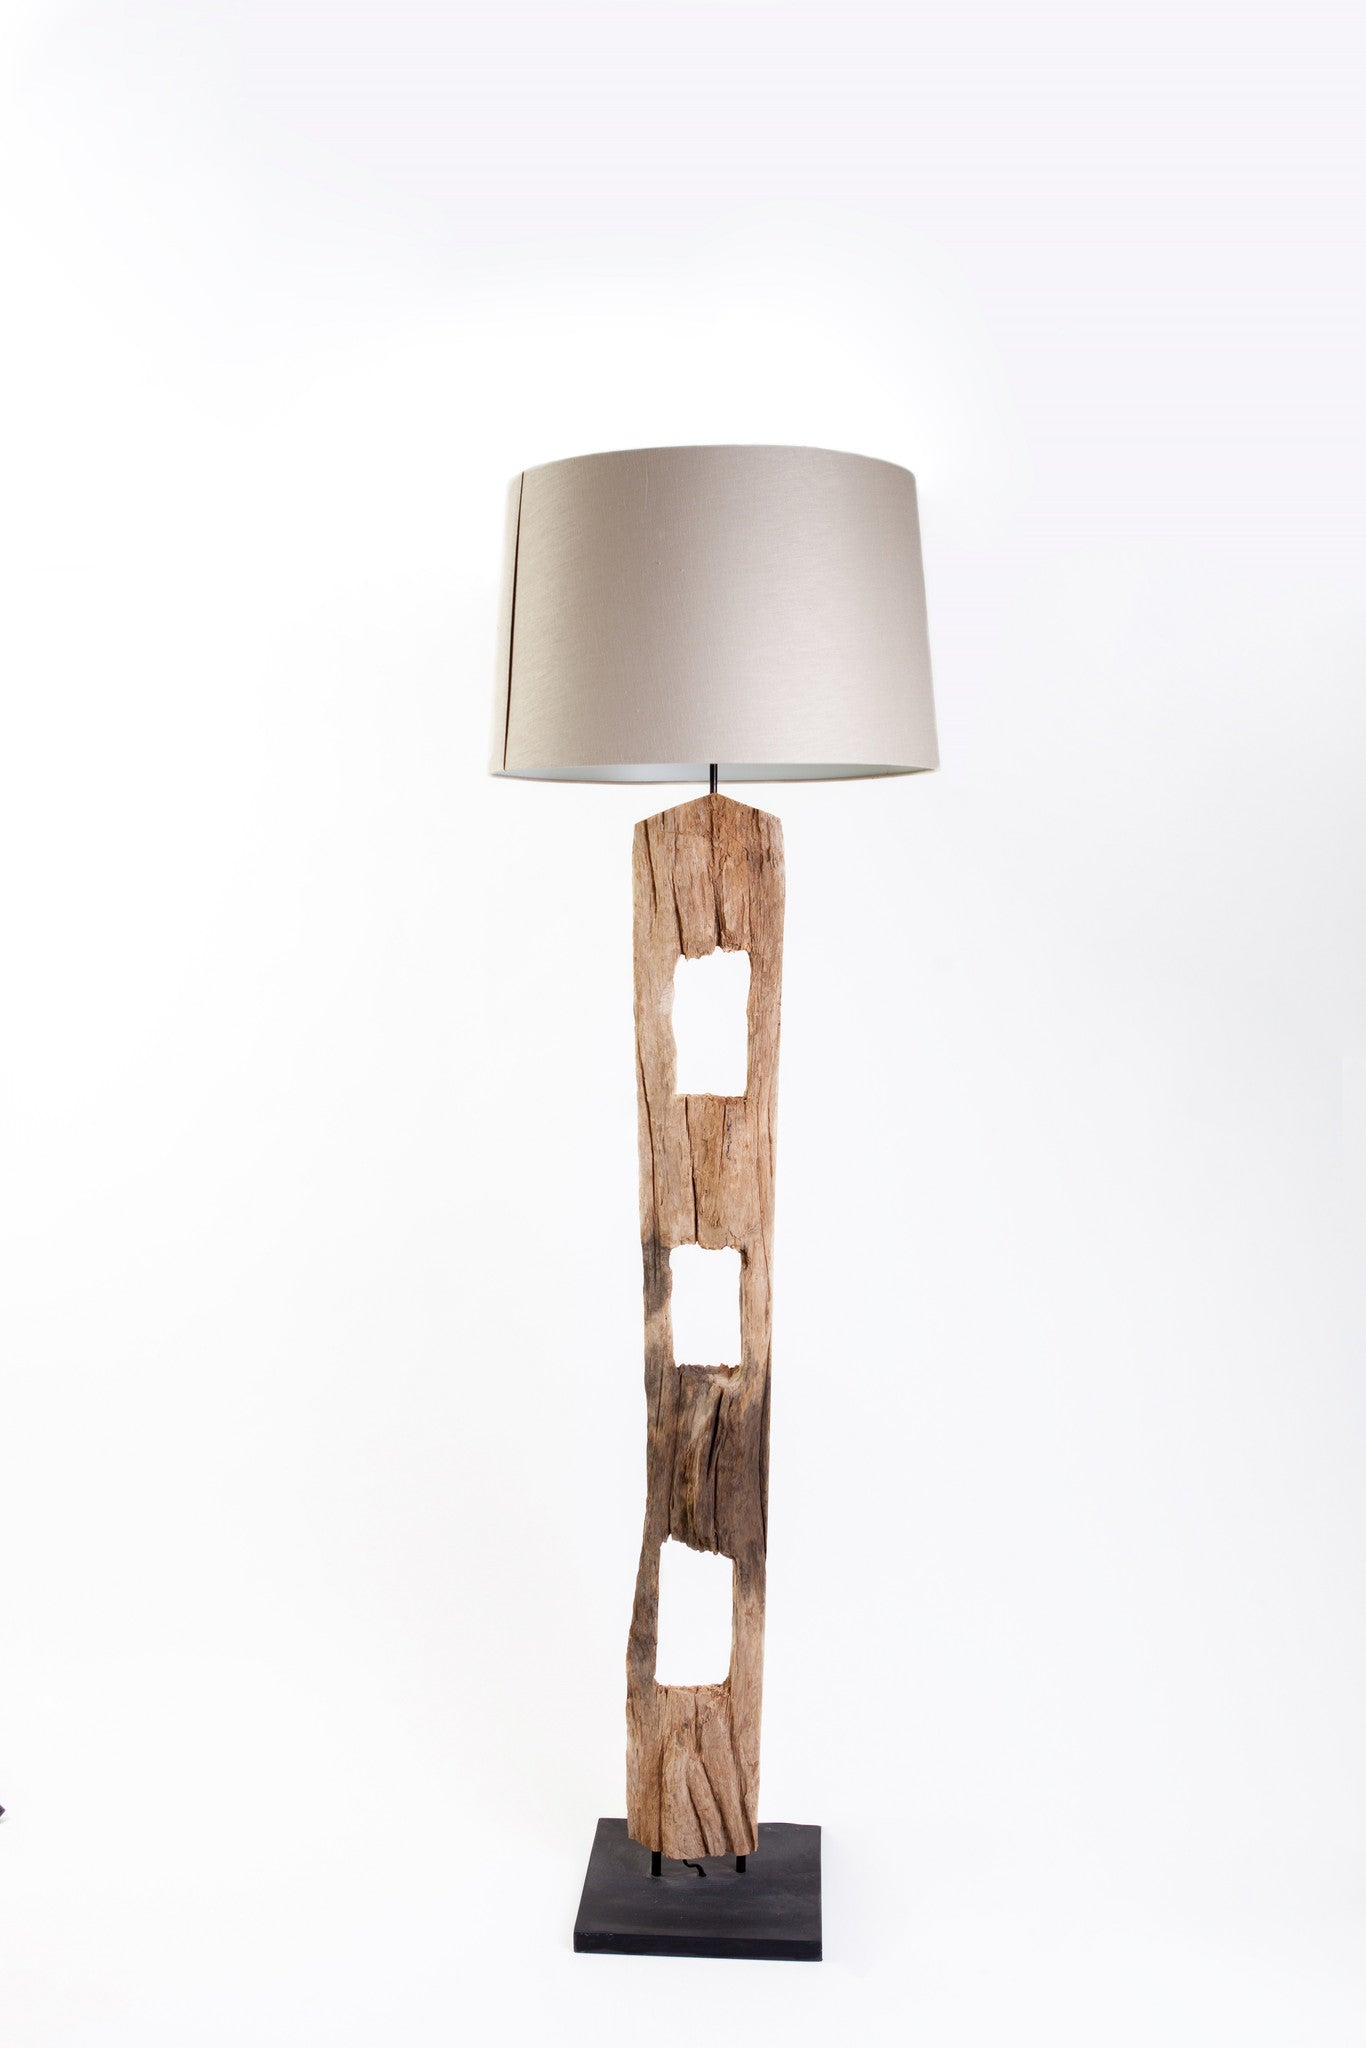 Fence Rail Floor Lamp with Bleached Course Tan Linen Shade